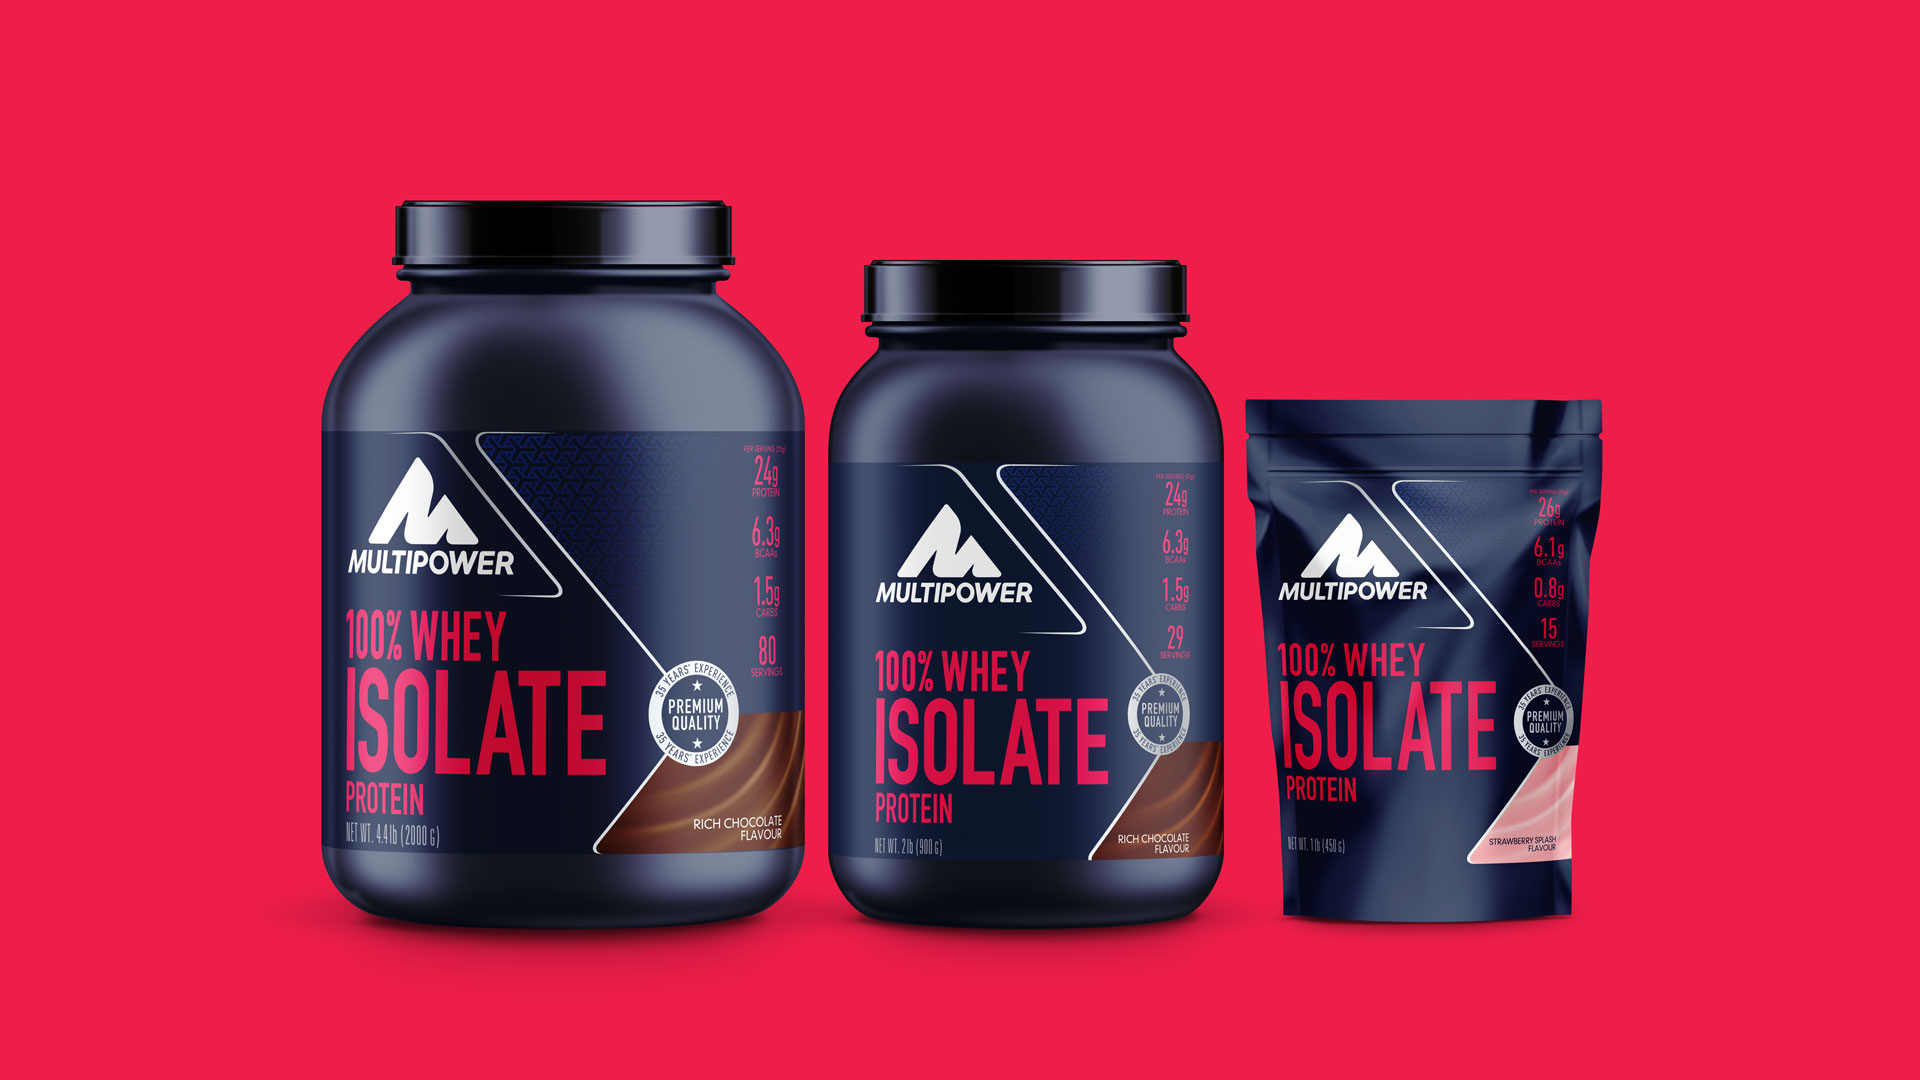 Multipower Whey Isolate Protein Packaging Design